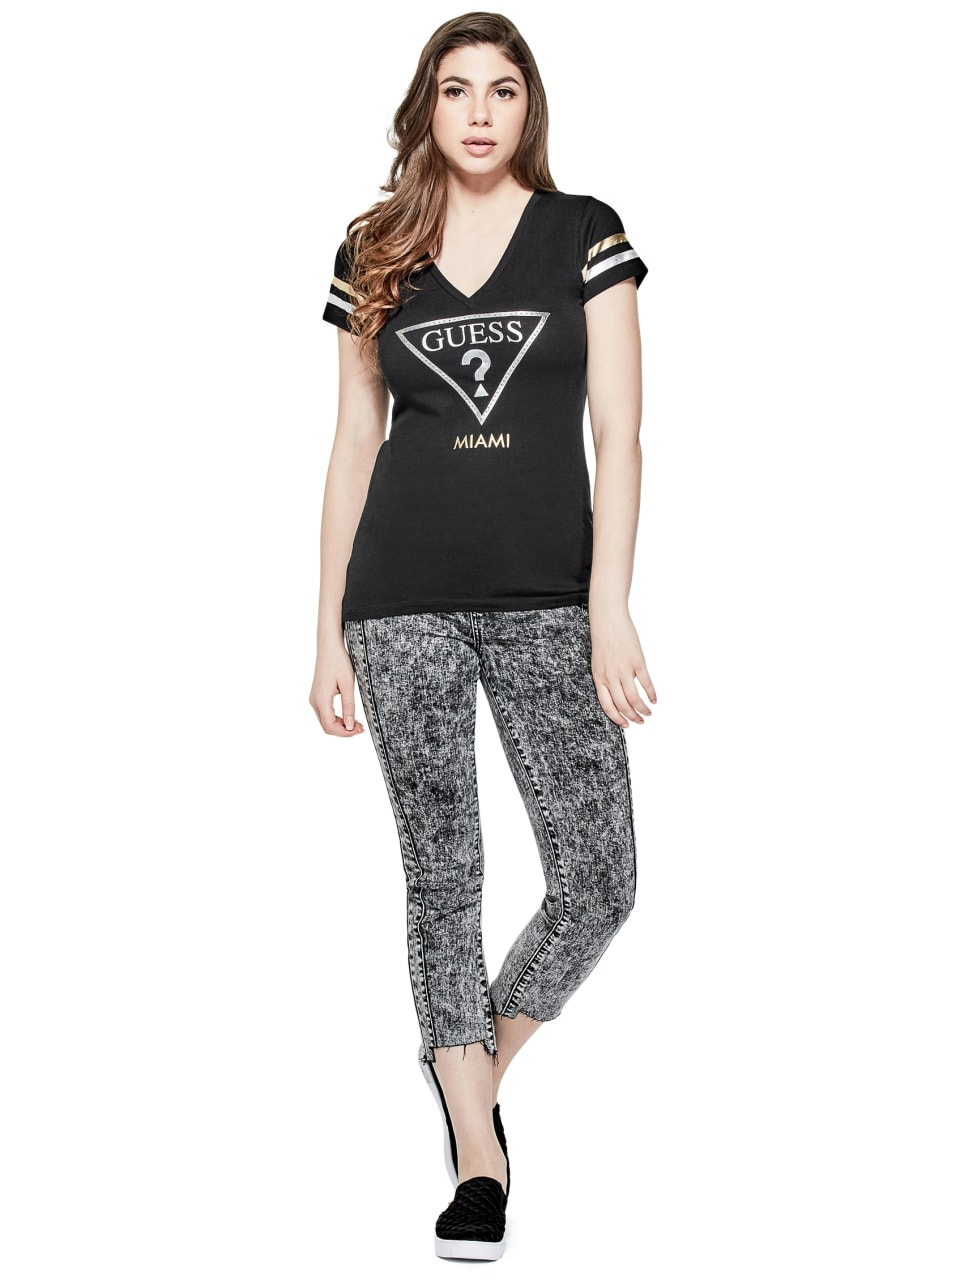 GUESS-Factory-Women-039-s-Miami-City-Tee thumbnail 6